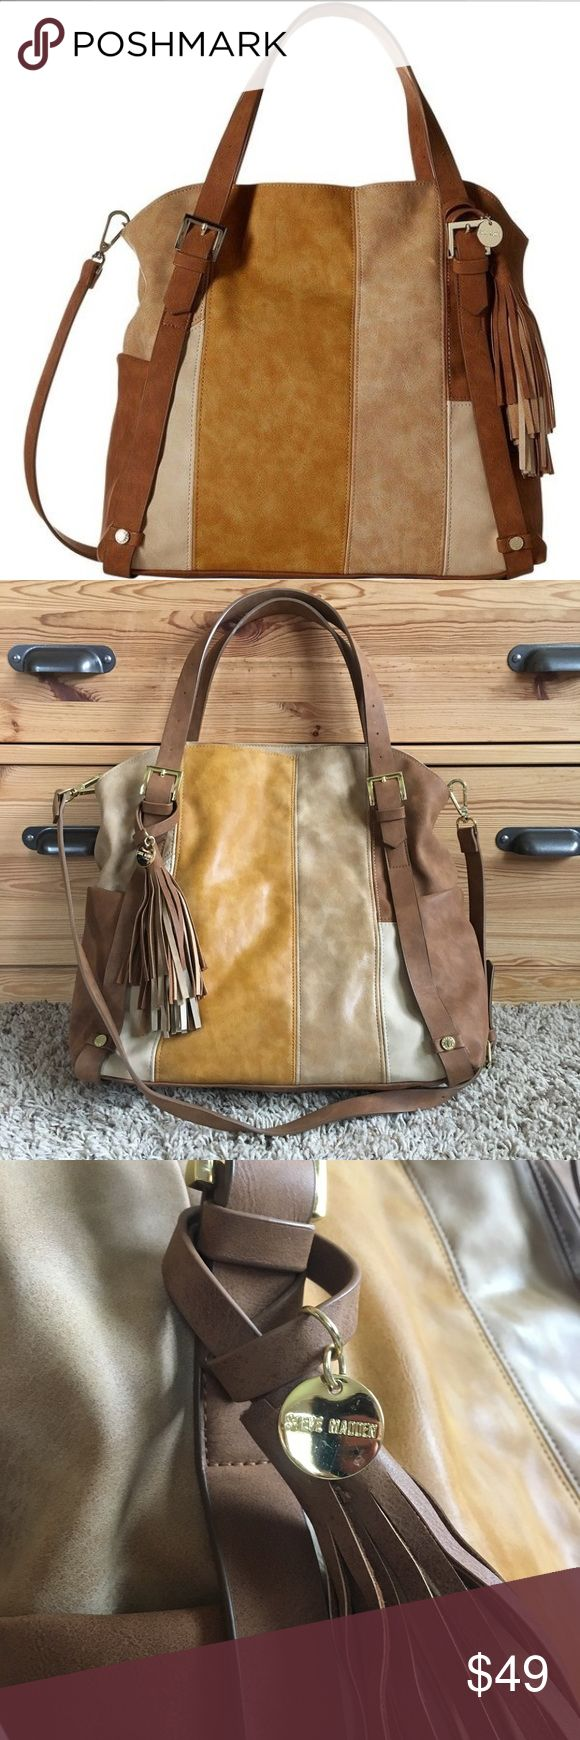 """Gently Used Steve Madden handbag Gently used for a month. 13""""h x 16""""w x 7""""d. Mustard yellow, tan & cream patchwork faux leather-perfect for fall! Has a removable, adjustable crossbody strap (35""""). Large interior with 2 slip pockets & 1 zipper pocket. 2 small pockets on sides of exterior. A small bit of blue coloring from a pair of new jeans is on the sides - shown in 6th pic. It's hardly noticeable and may come out with a little effort. I only wiped it with a baby wipe. Smoke&Pet free home…"""